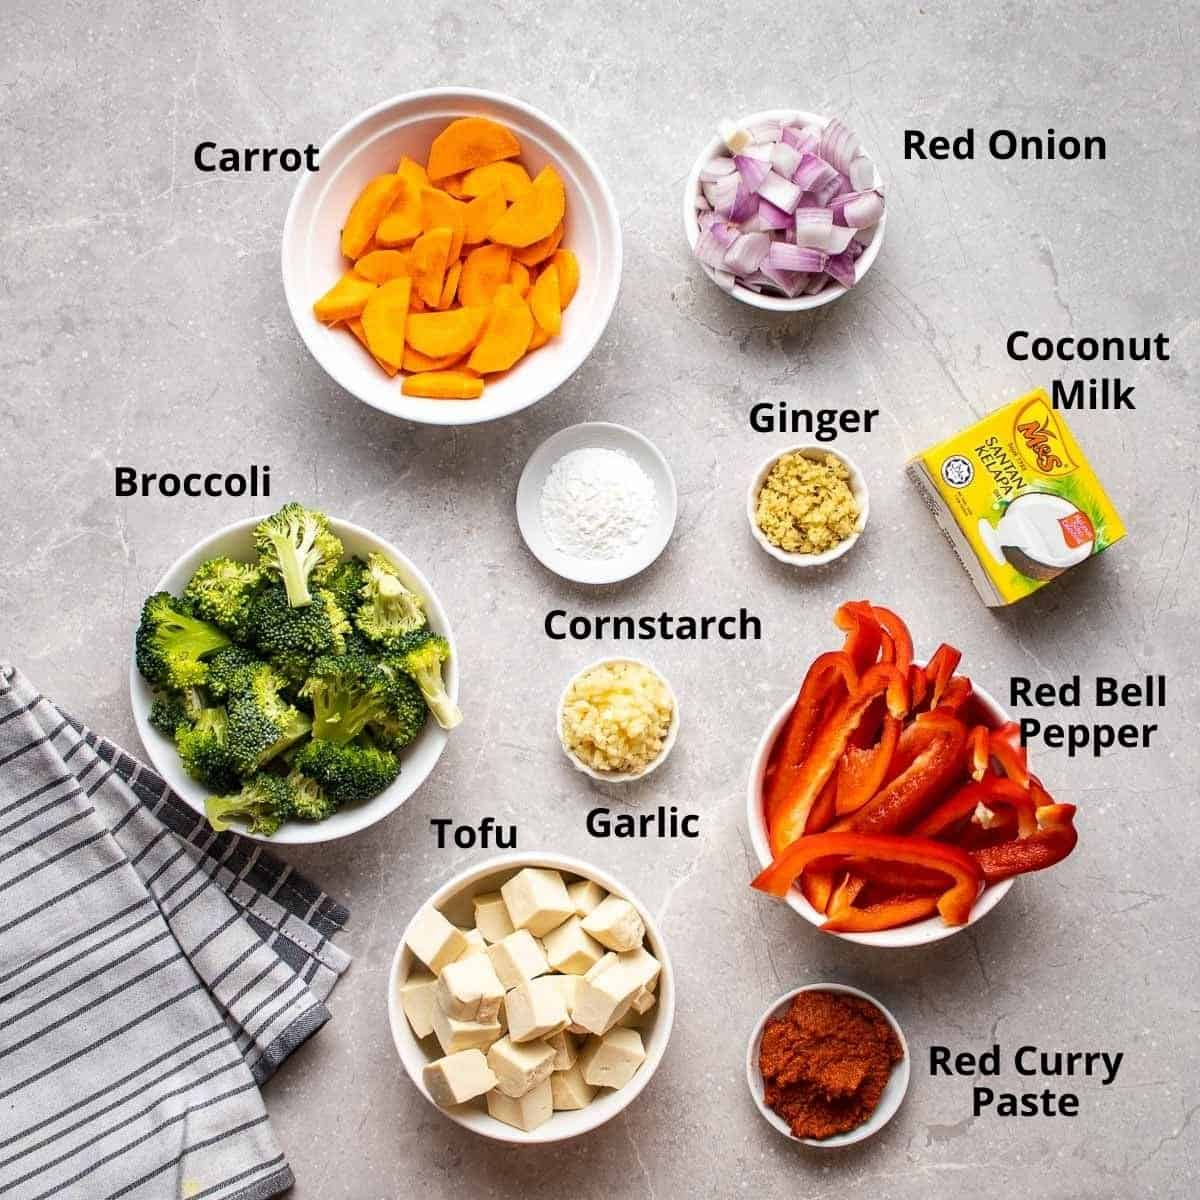 Ingredients needed to make curry.